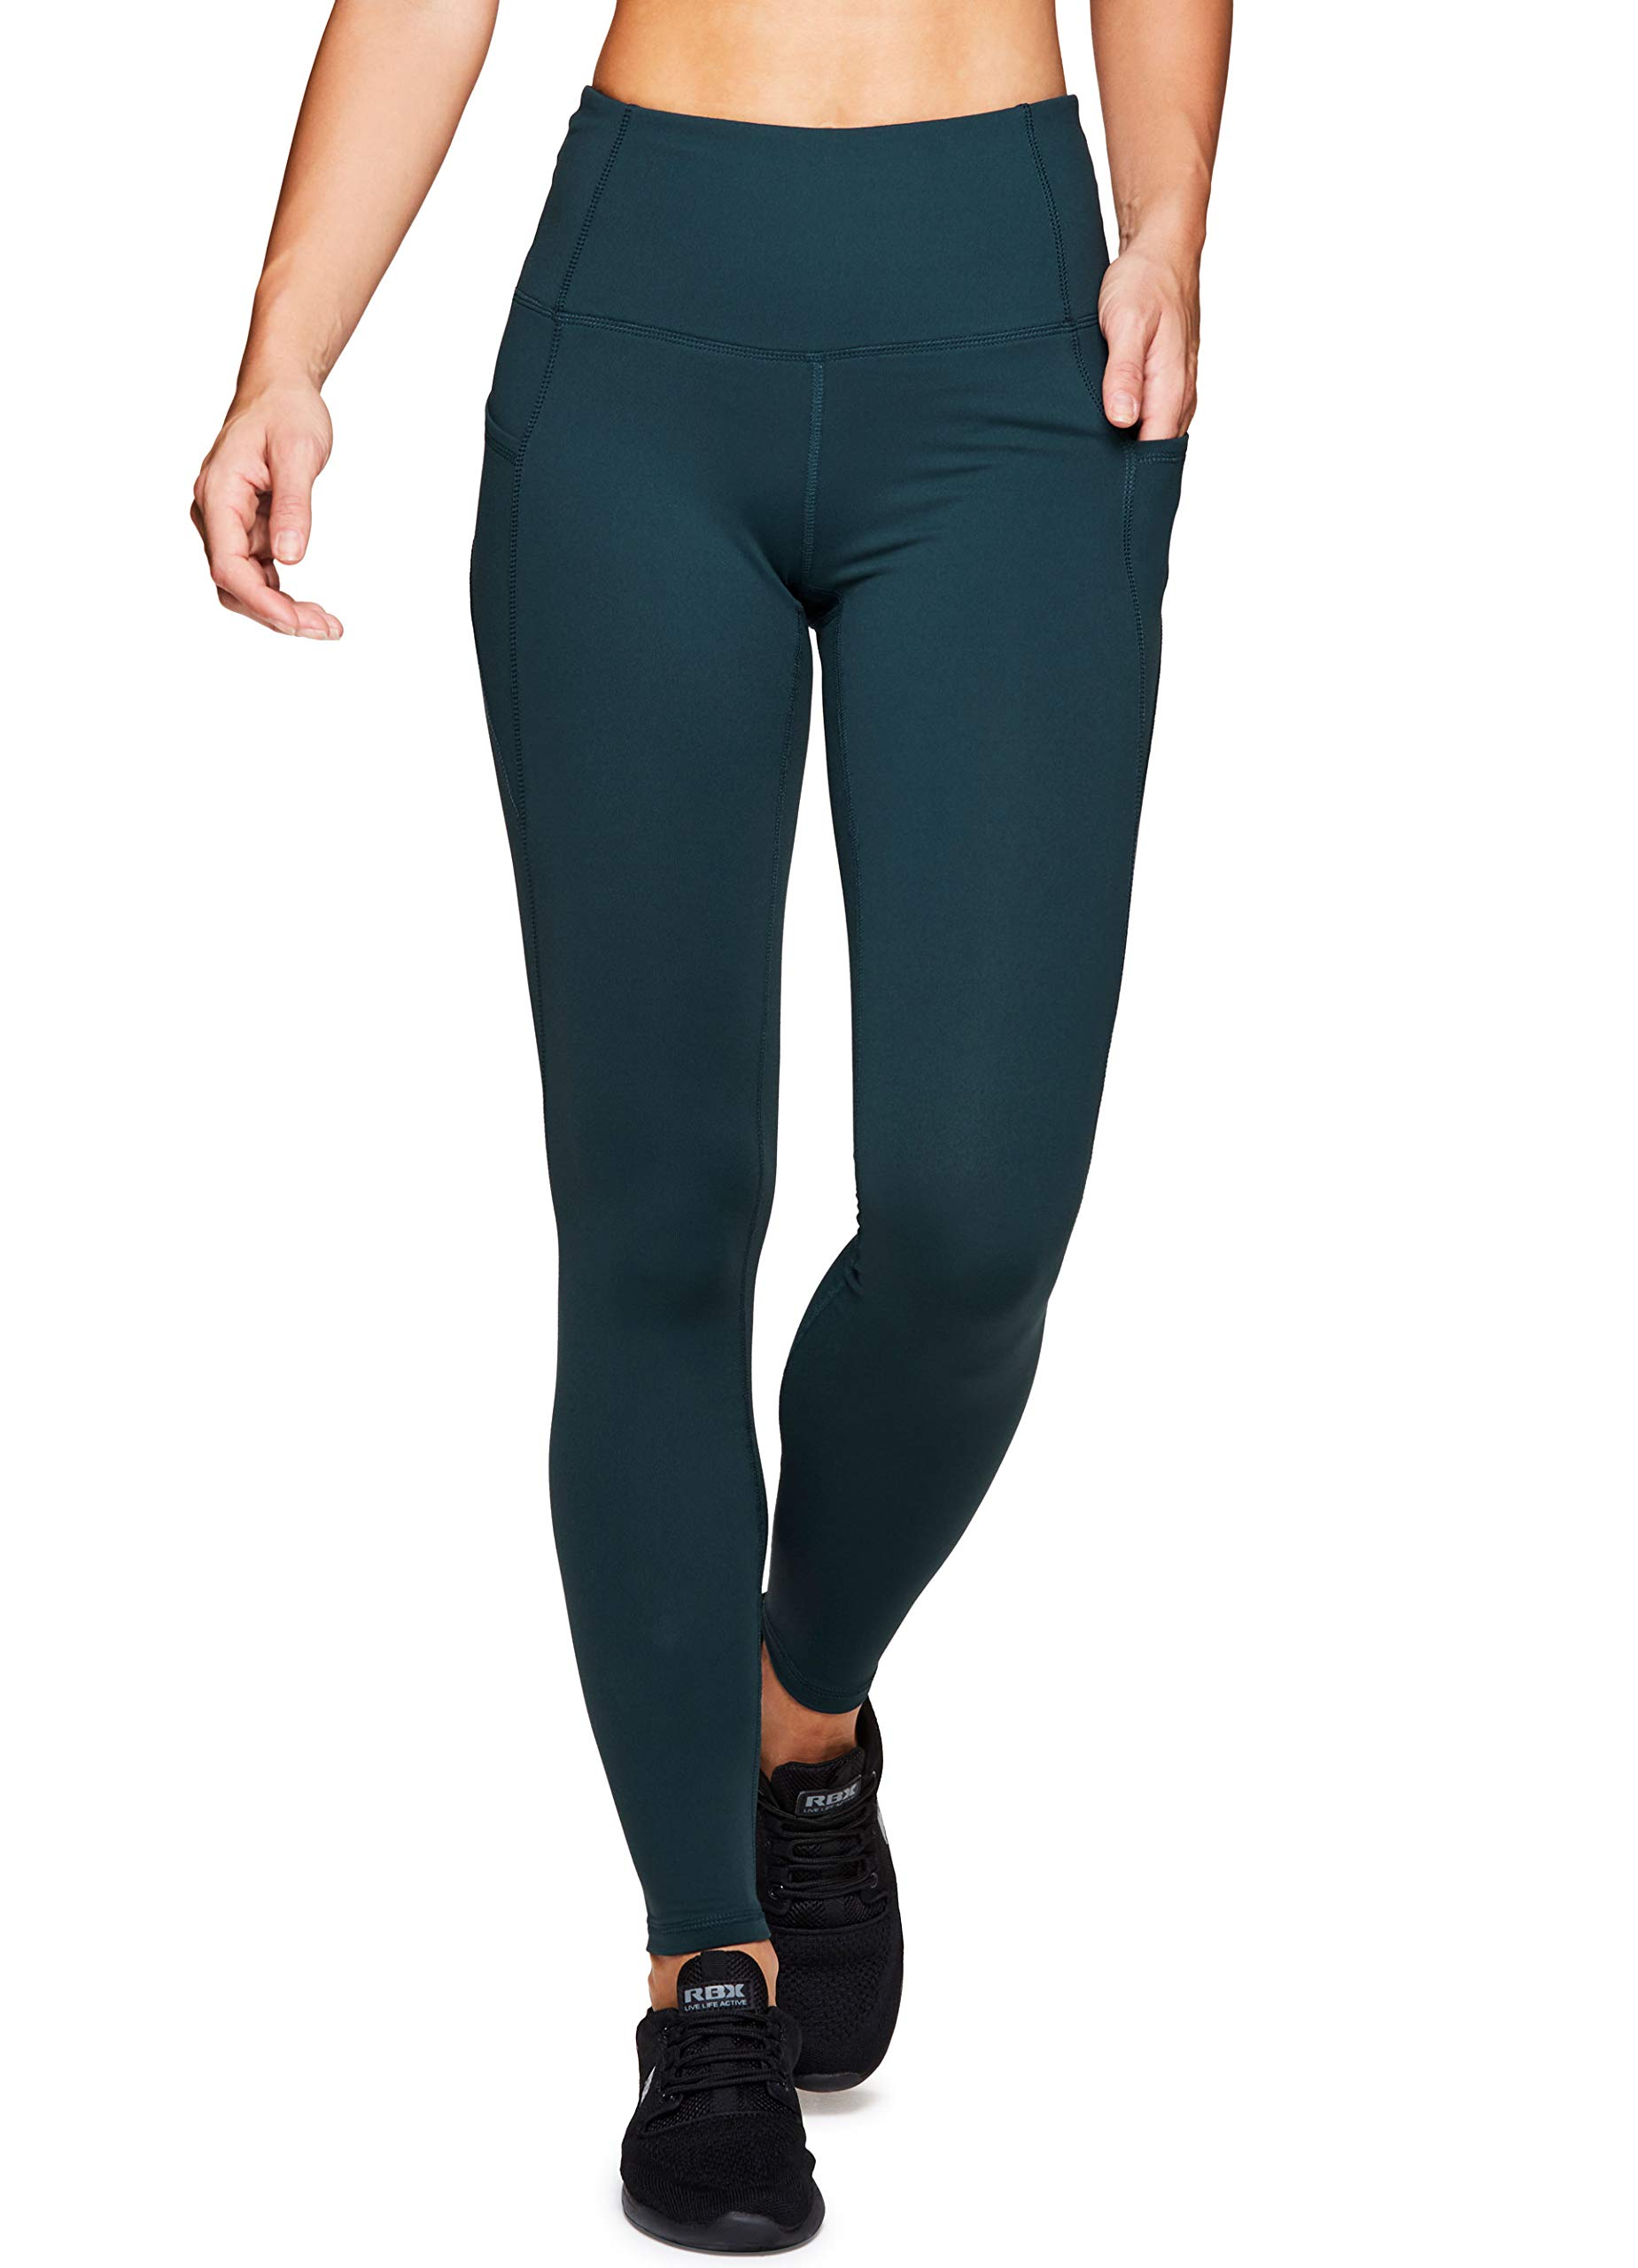 RBX Active Women's High Waisted Workout Leggings Green S19 L by RBX